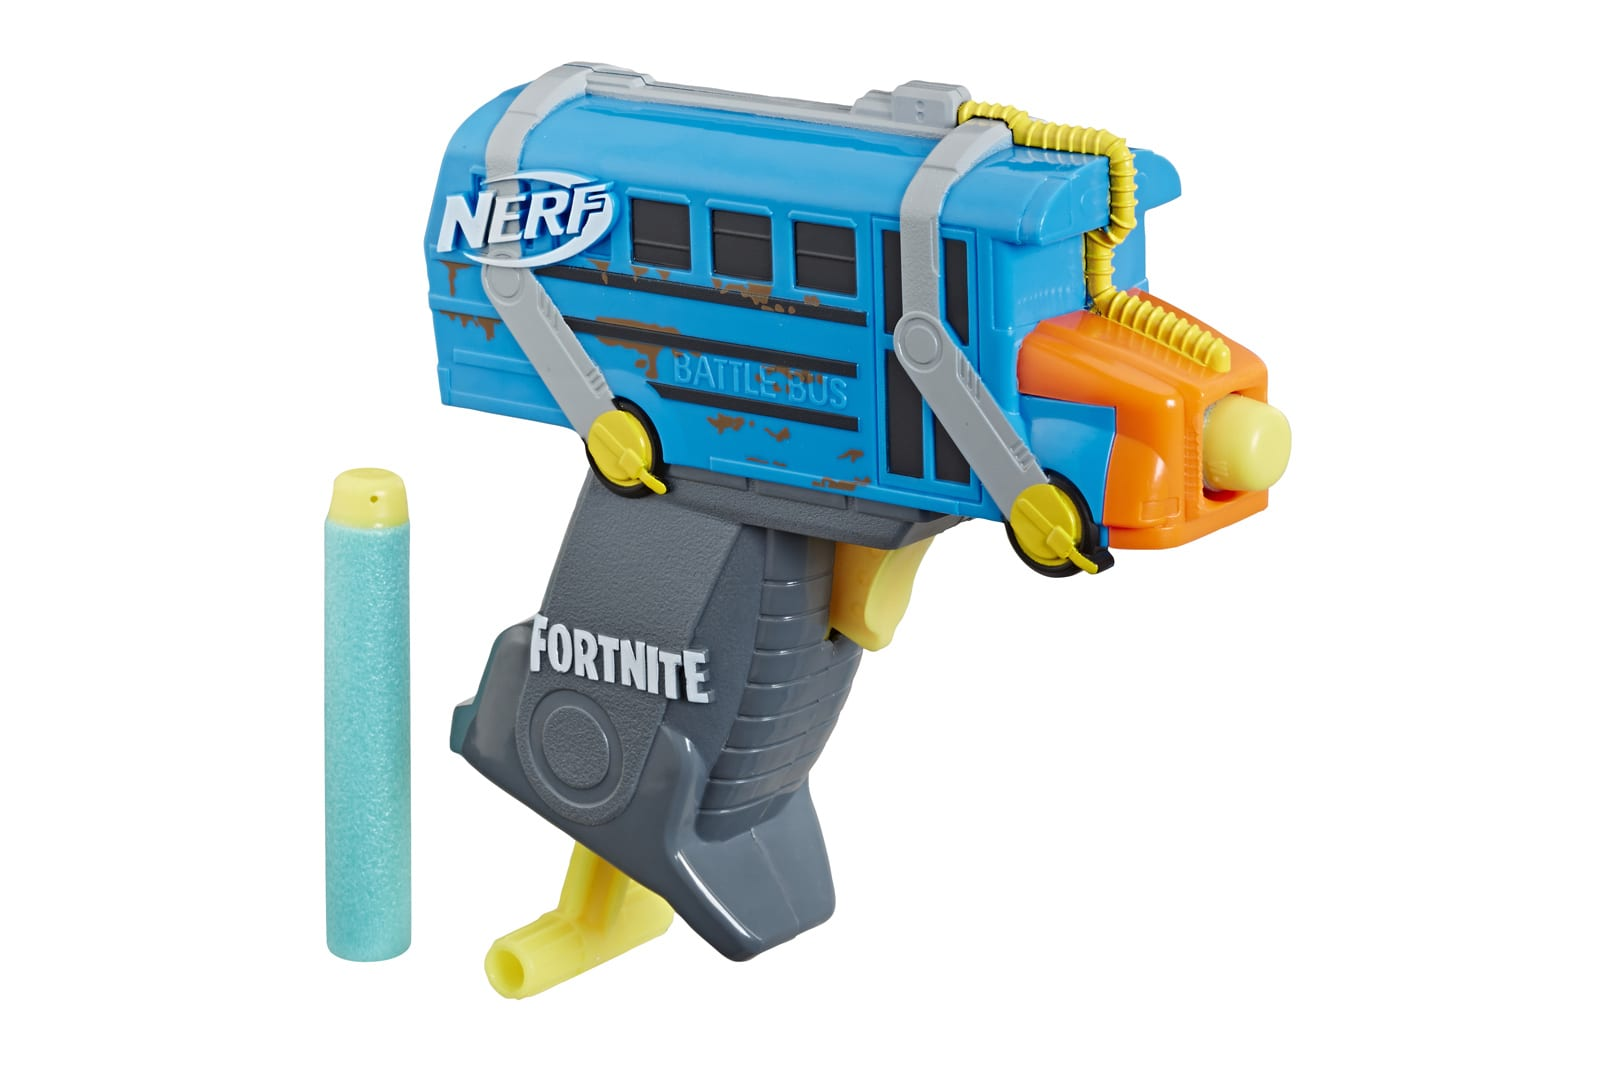 Nerf 'Fortnite' Battle Bus MicroShots blaster